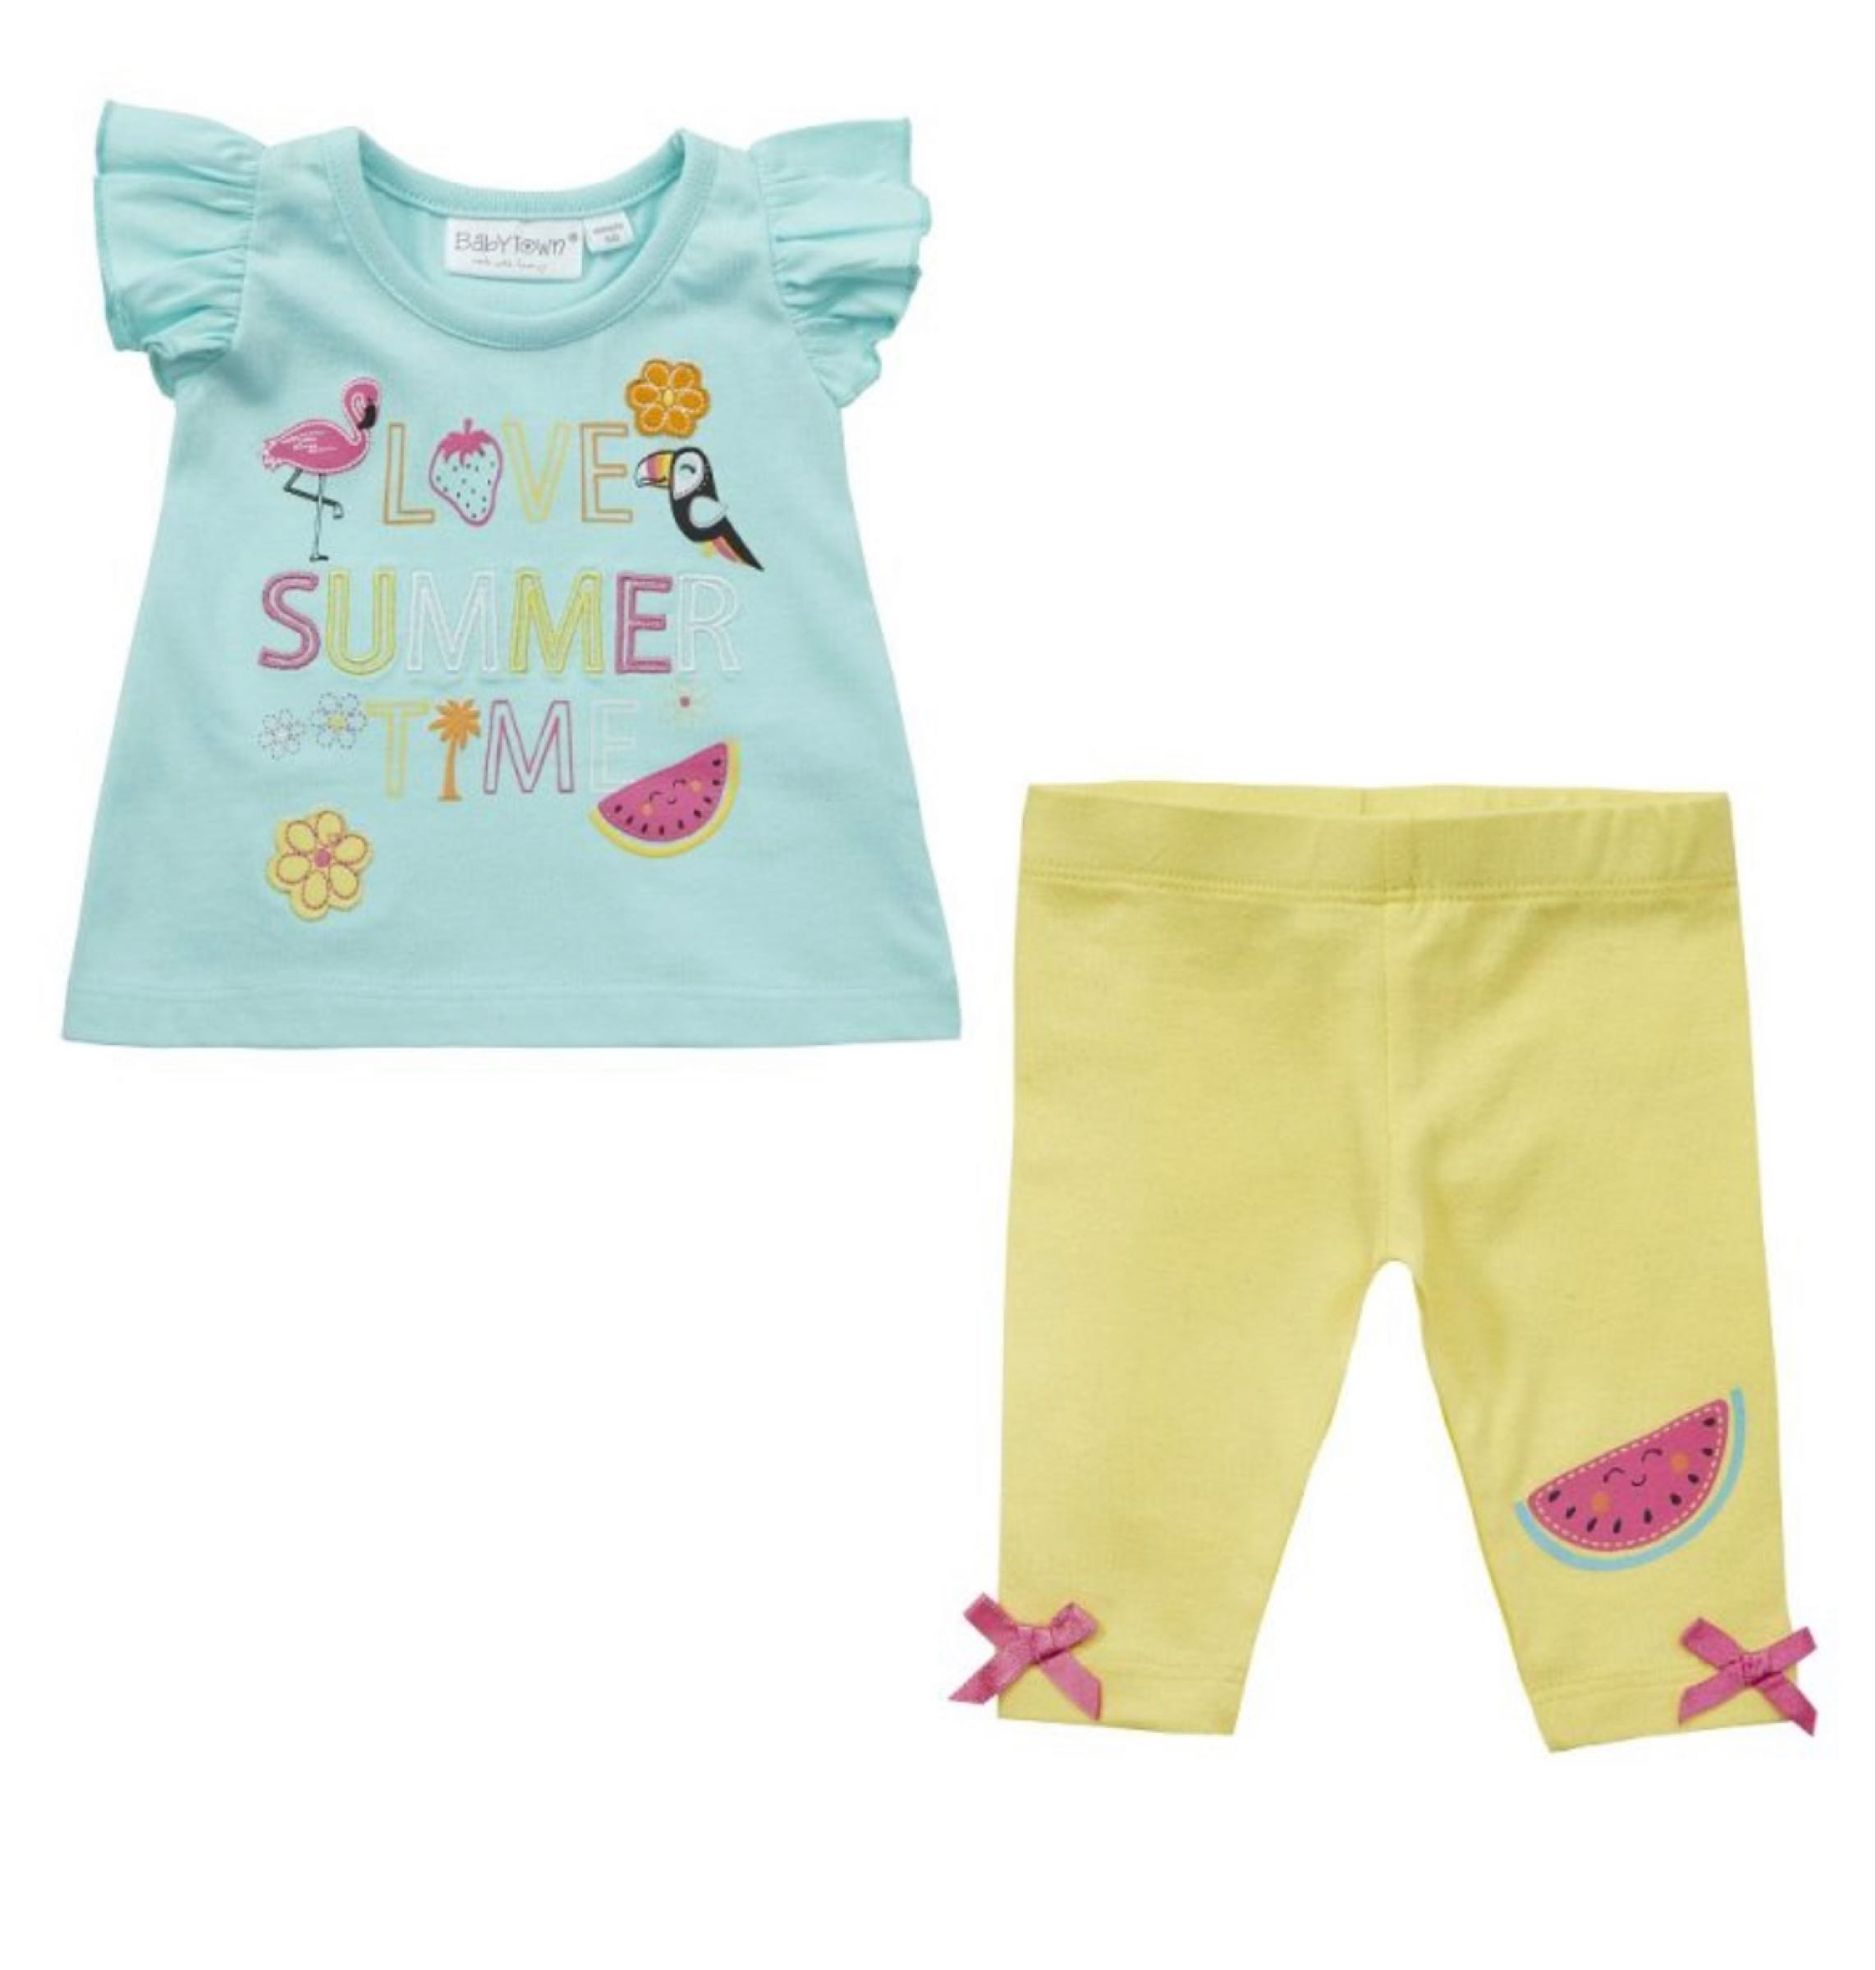 Love Summer Time top and leggings set